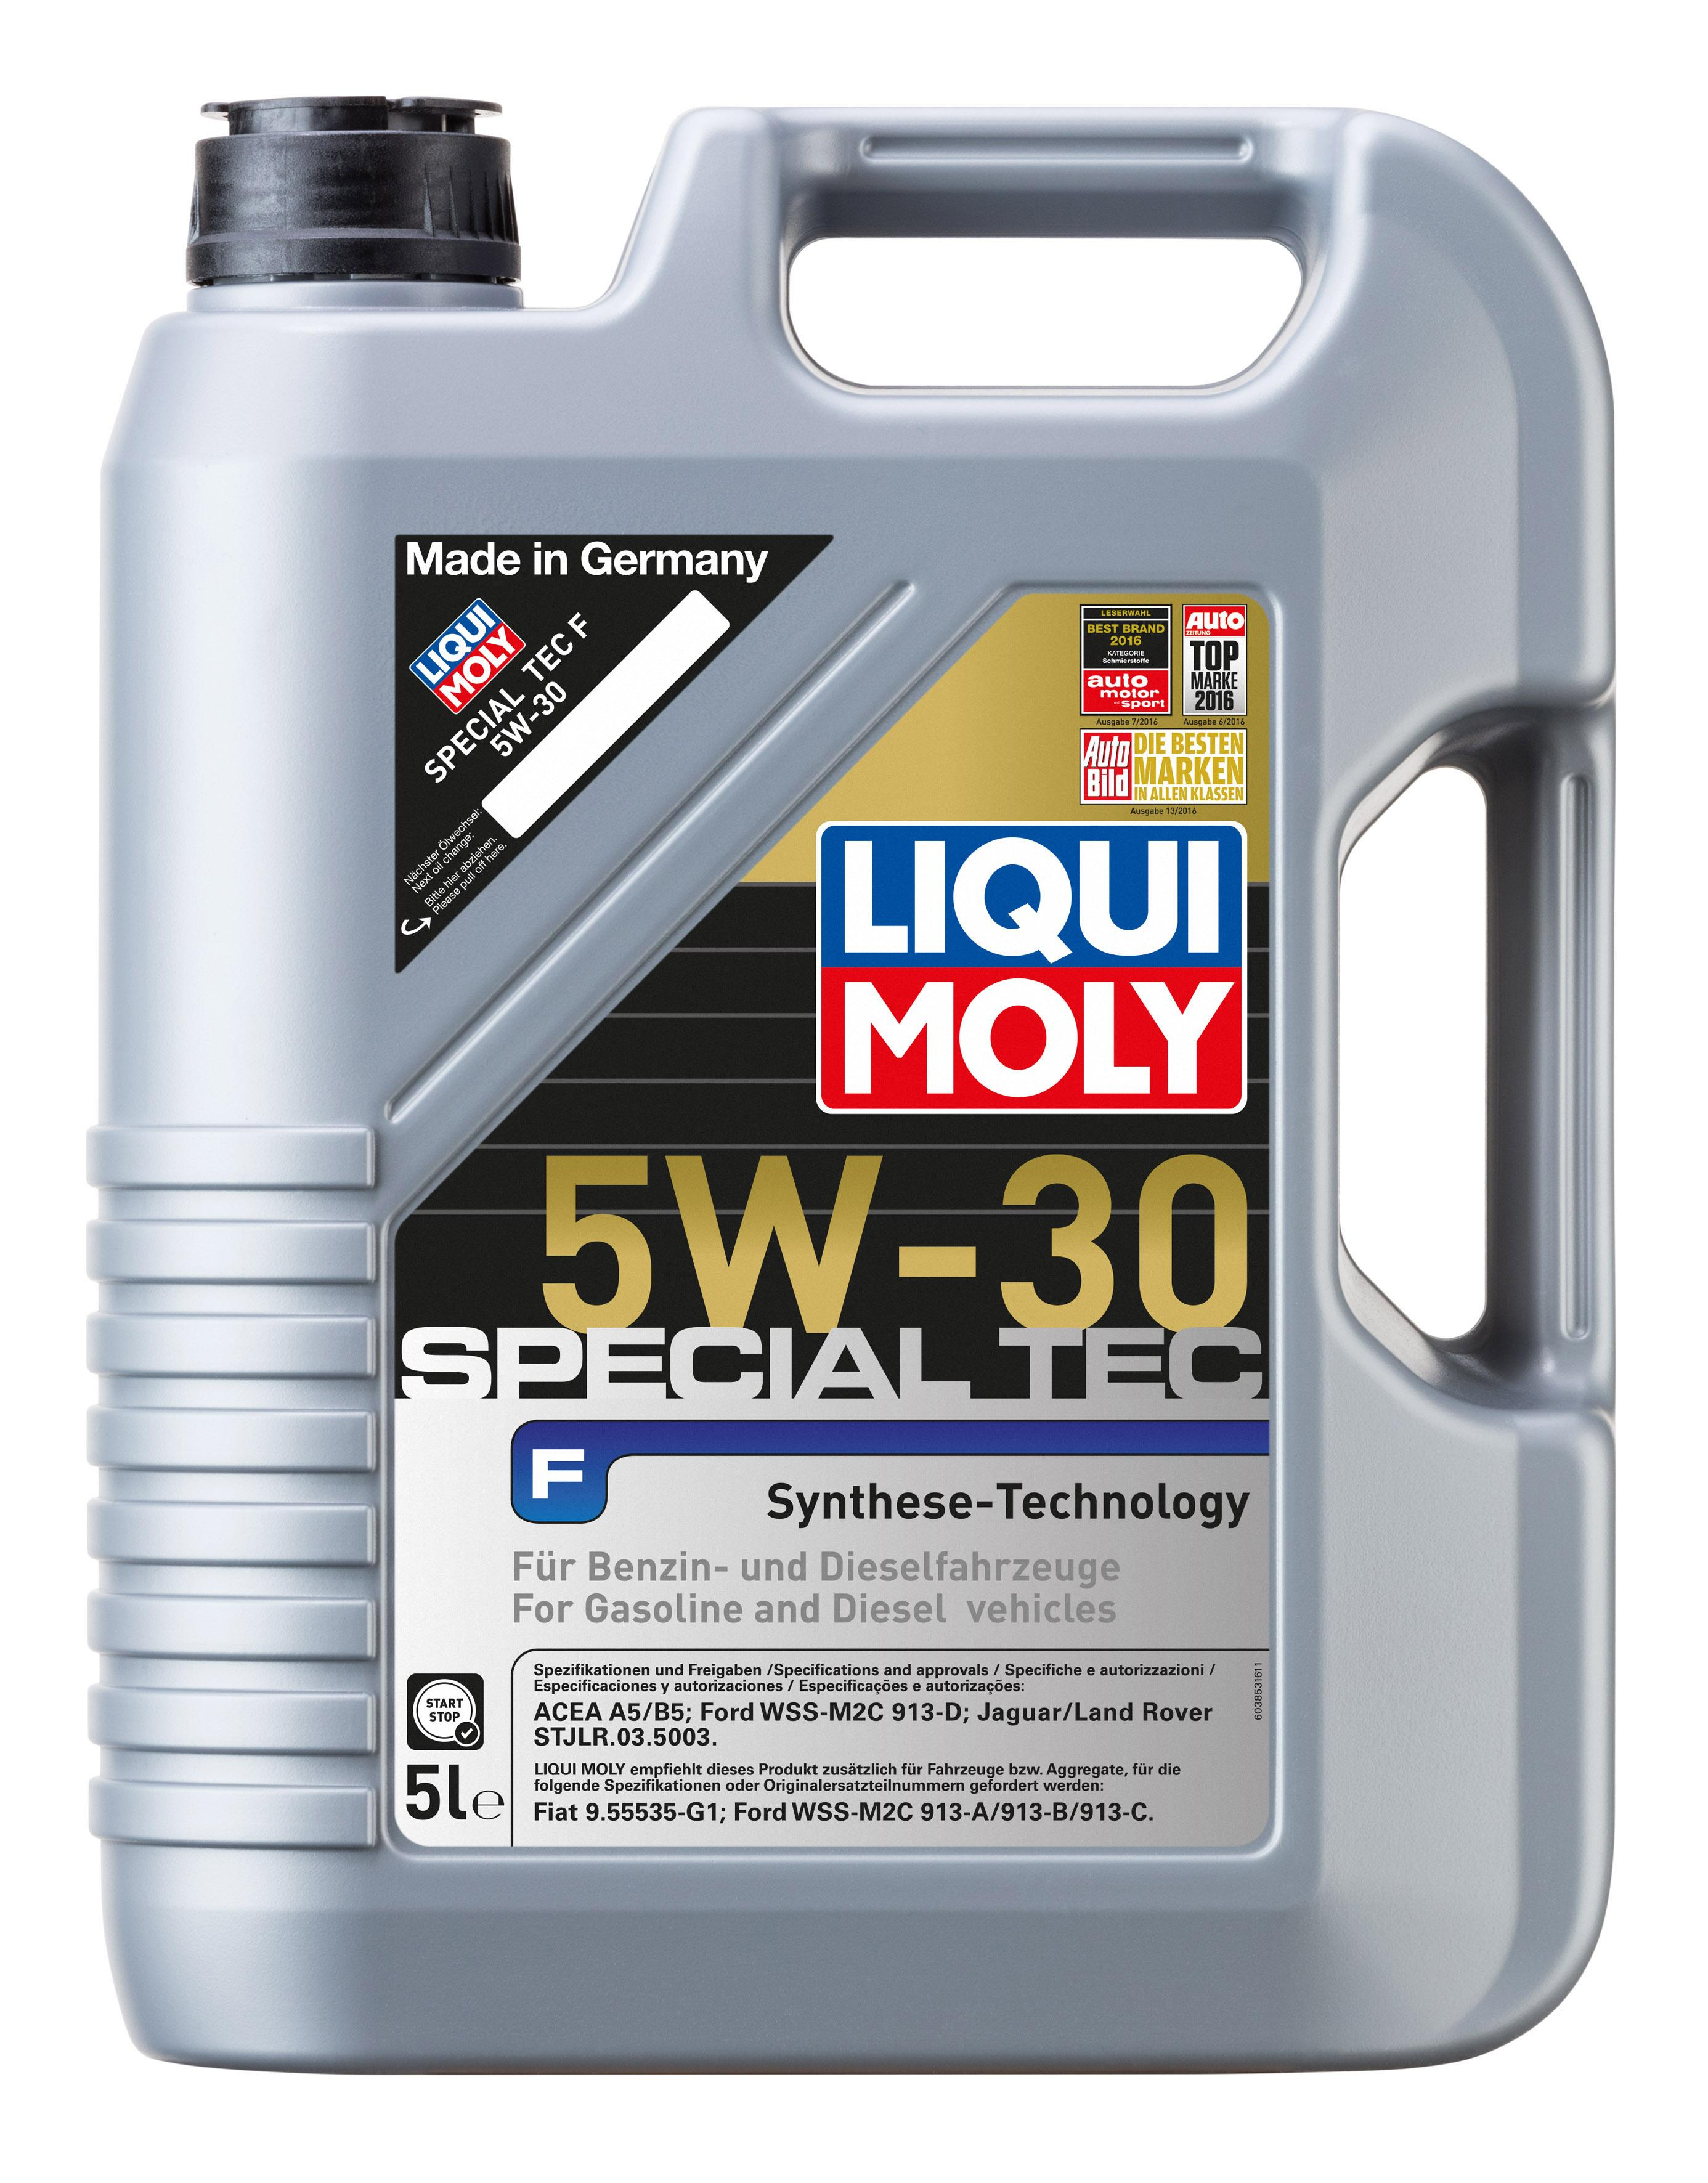 Engine Oil LIQUI MOLY 2326 - find, compare the prices and save!